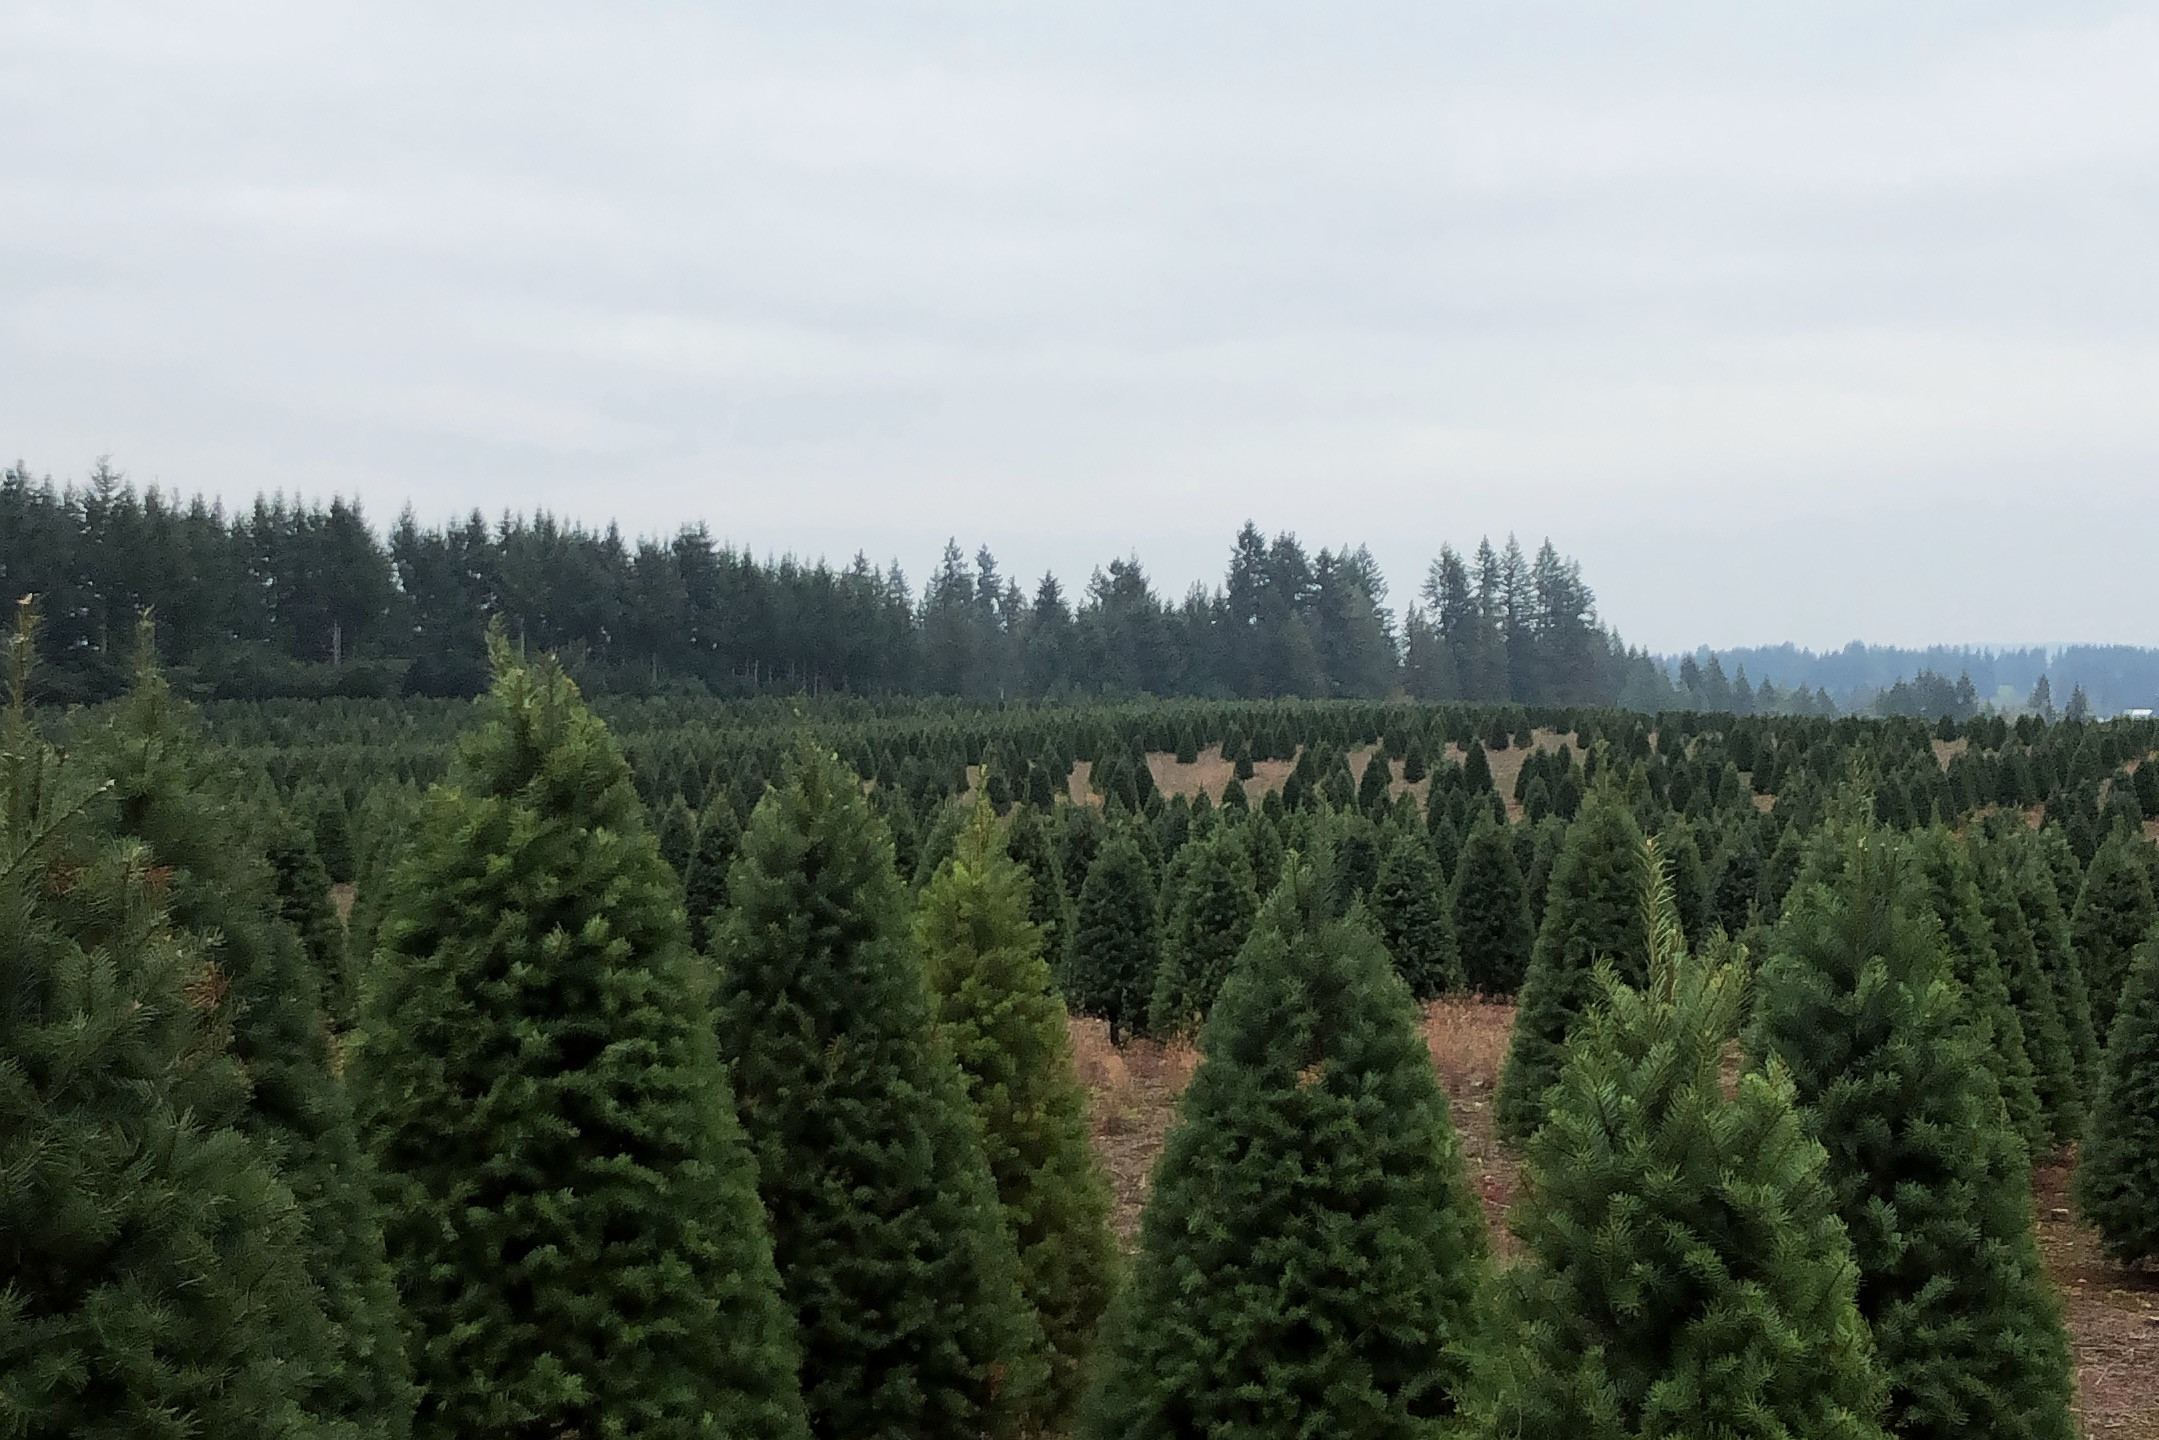 Christmas tree farm full of Douglas Firs